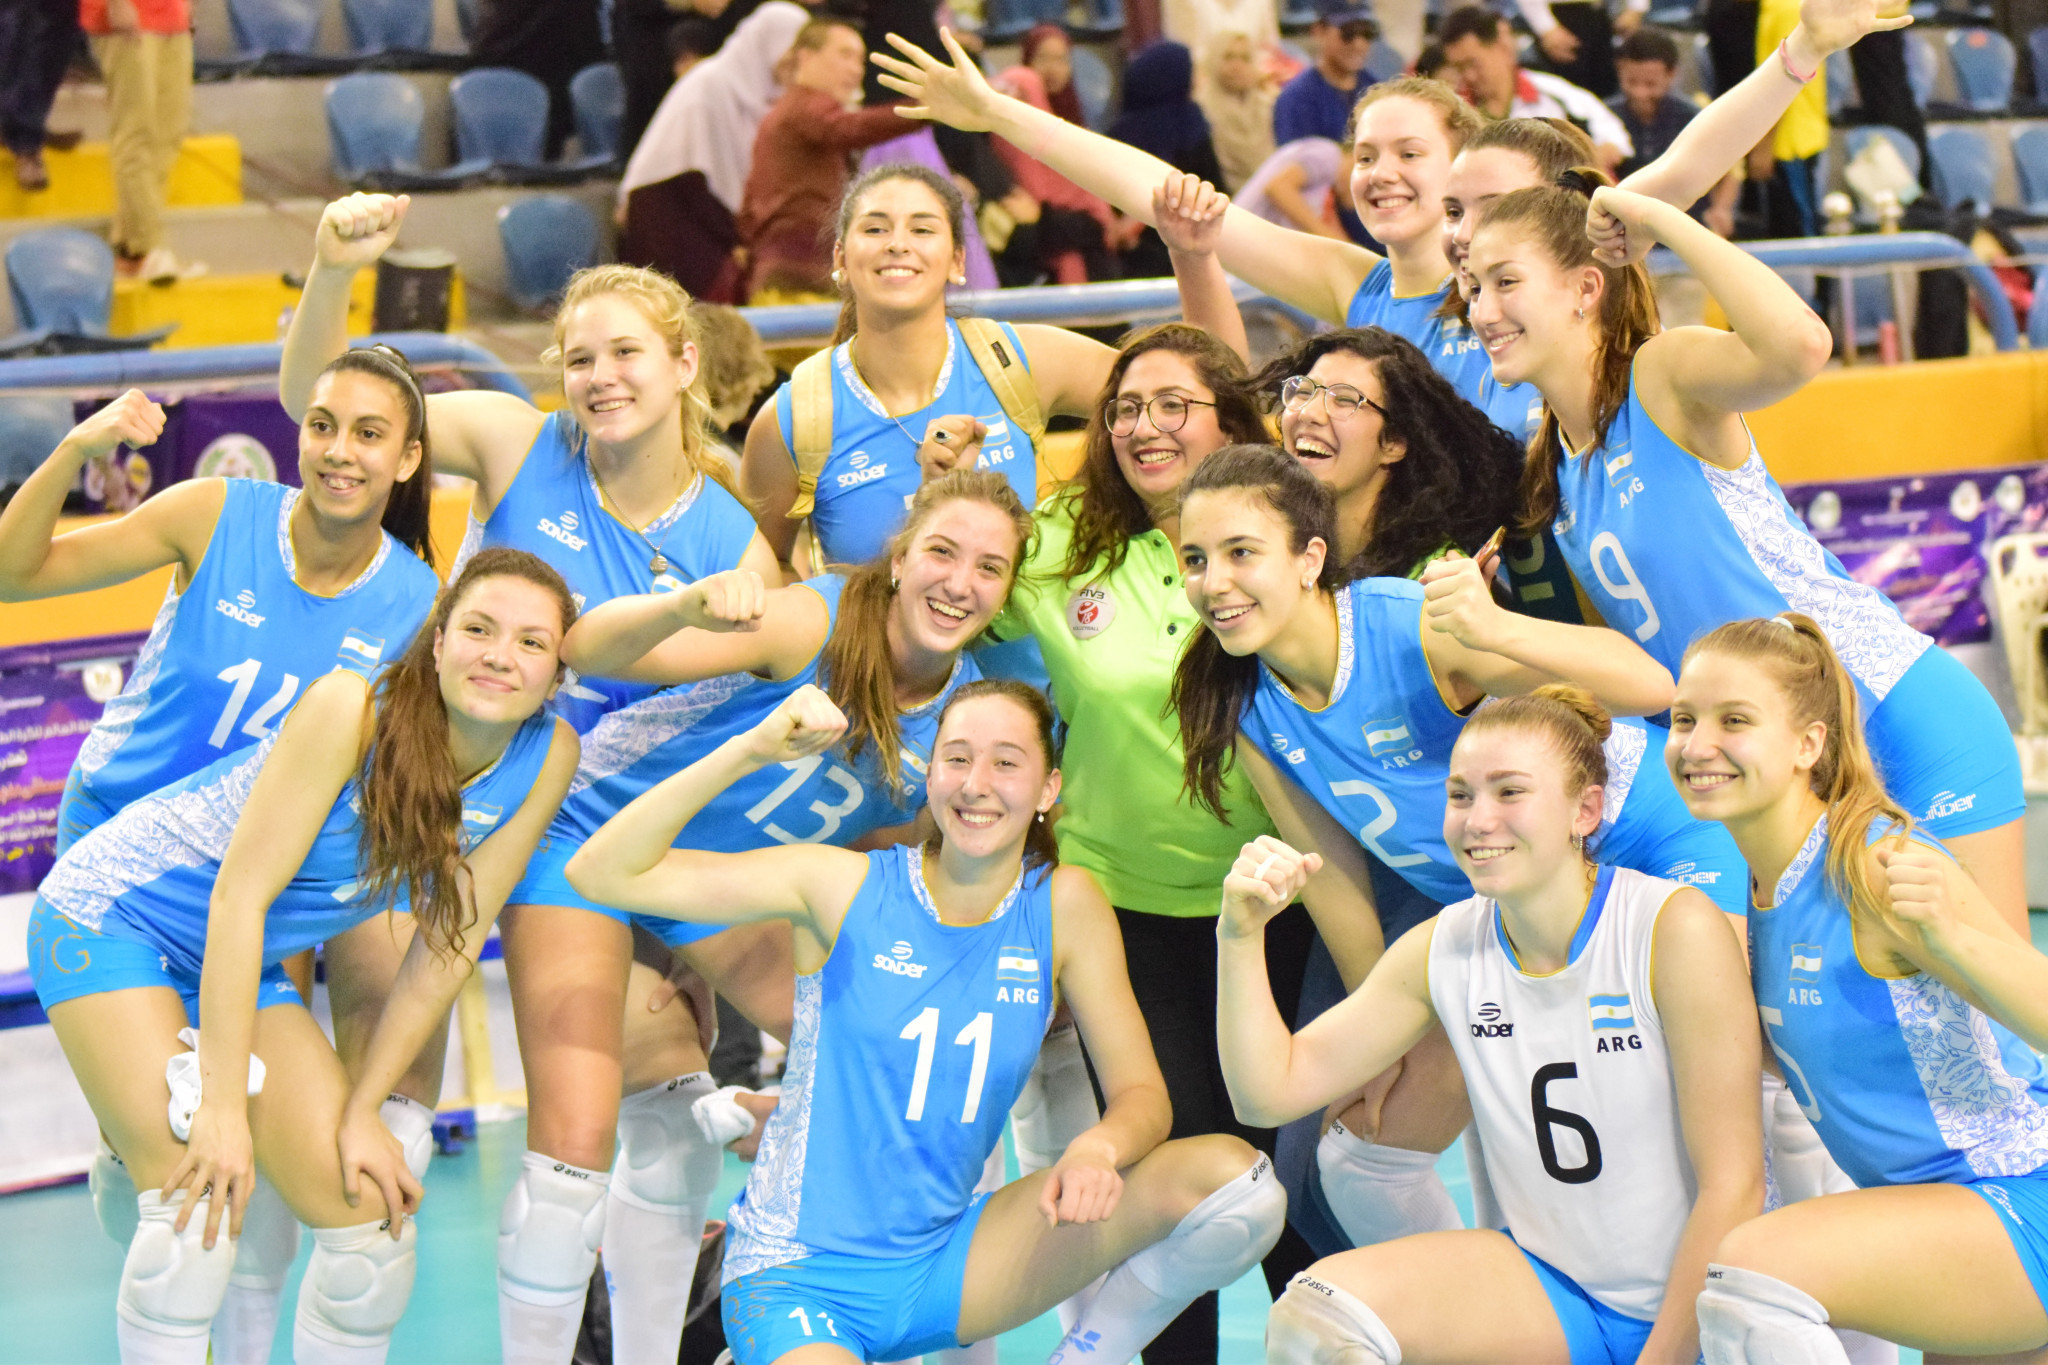 Argentina secure crucial victory to reach knockout phase at FIVB Girls' Under-18 World Championships